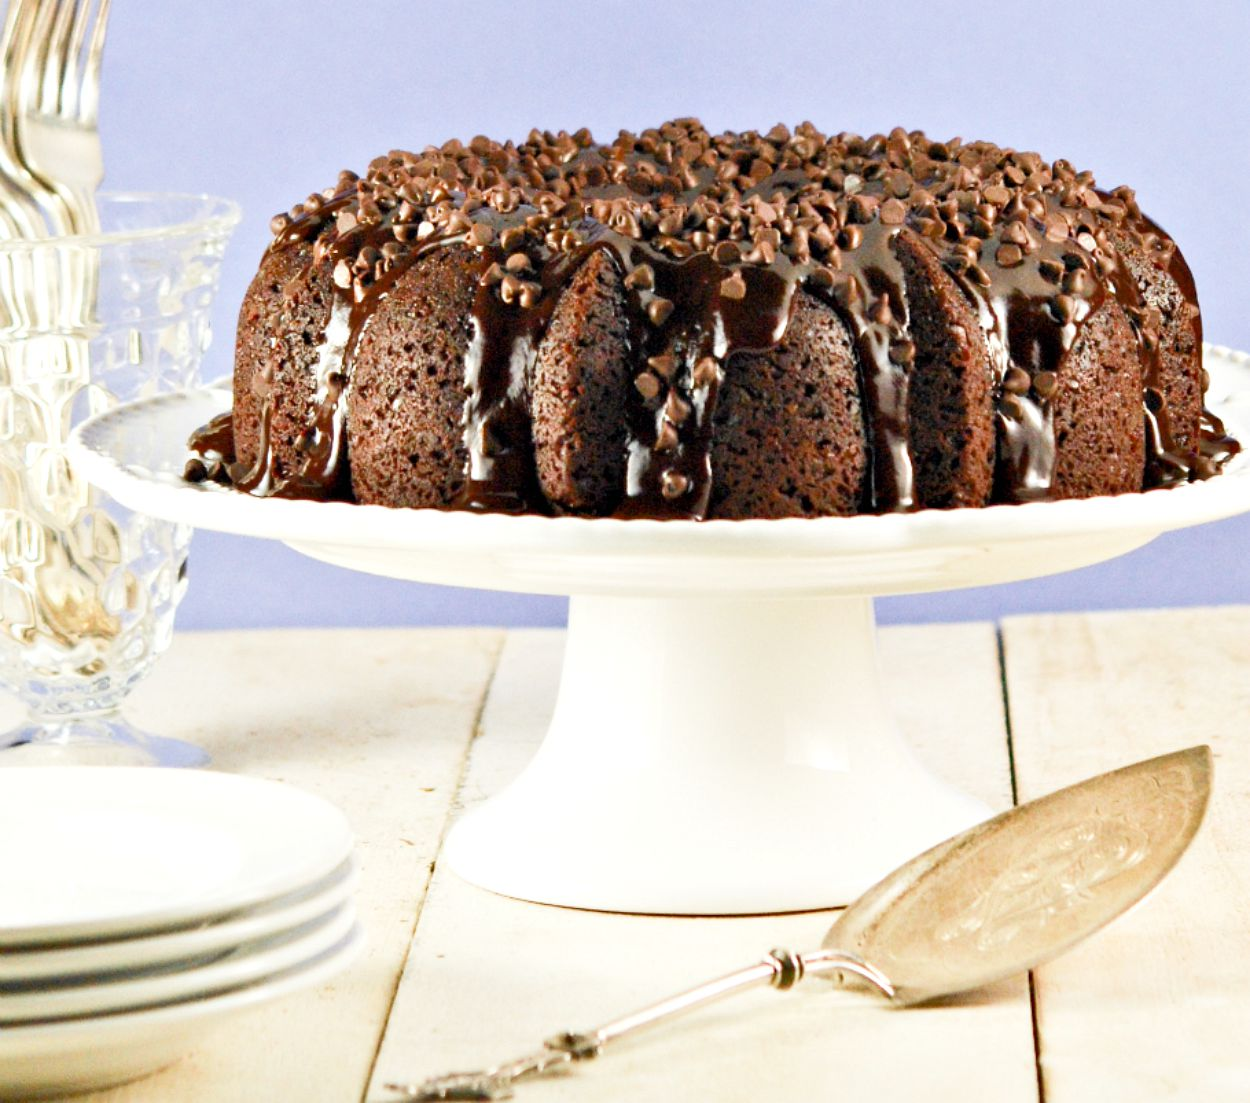 Chocolate Chocolate Chip Cake on a cake stand